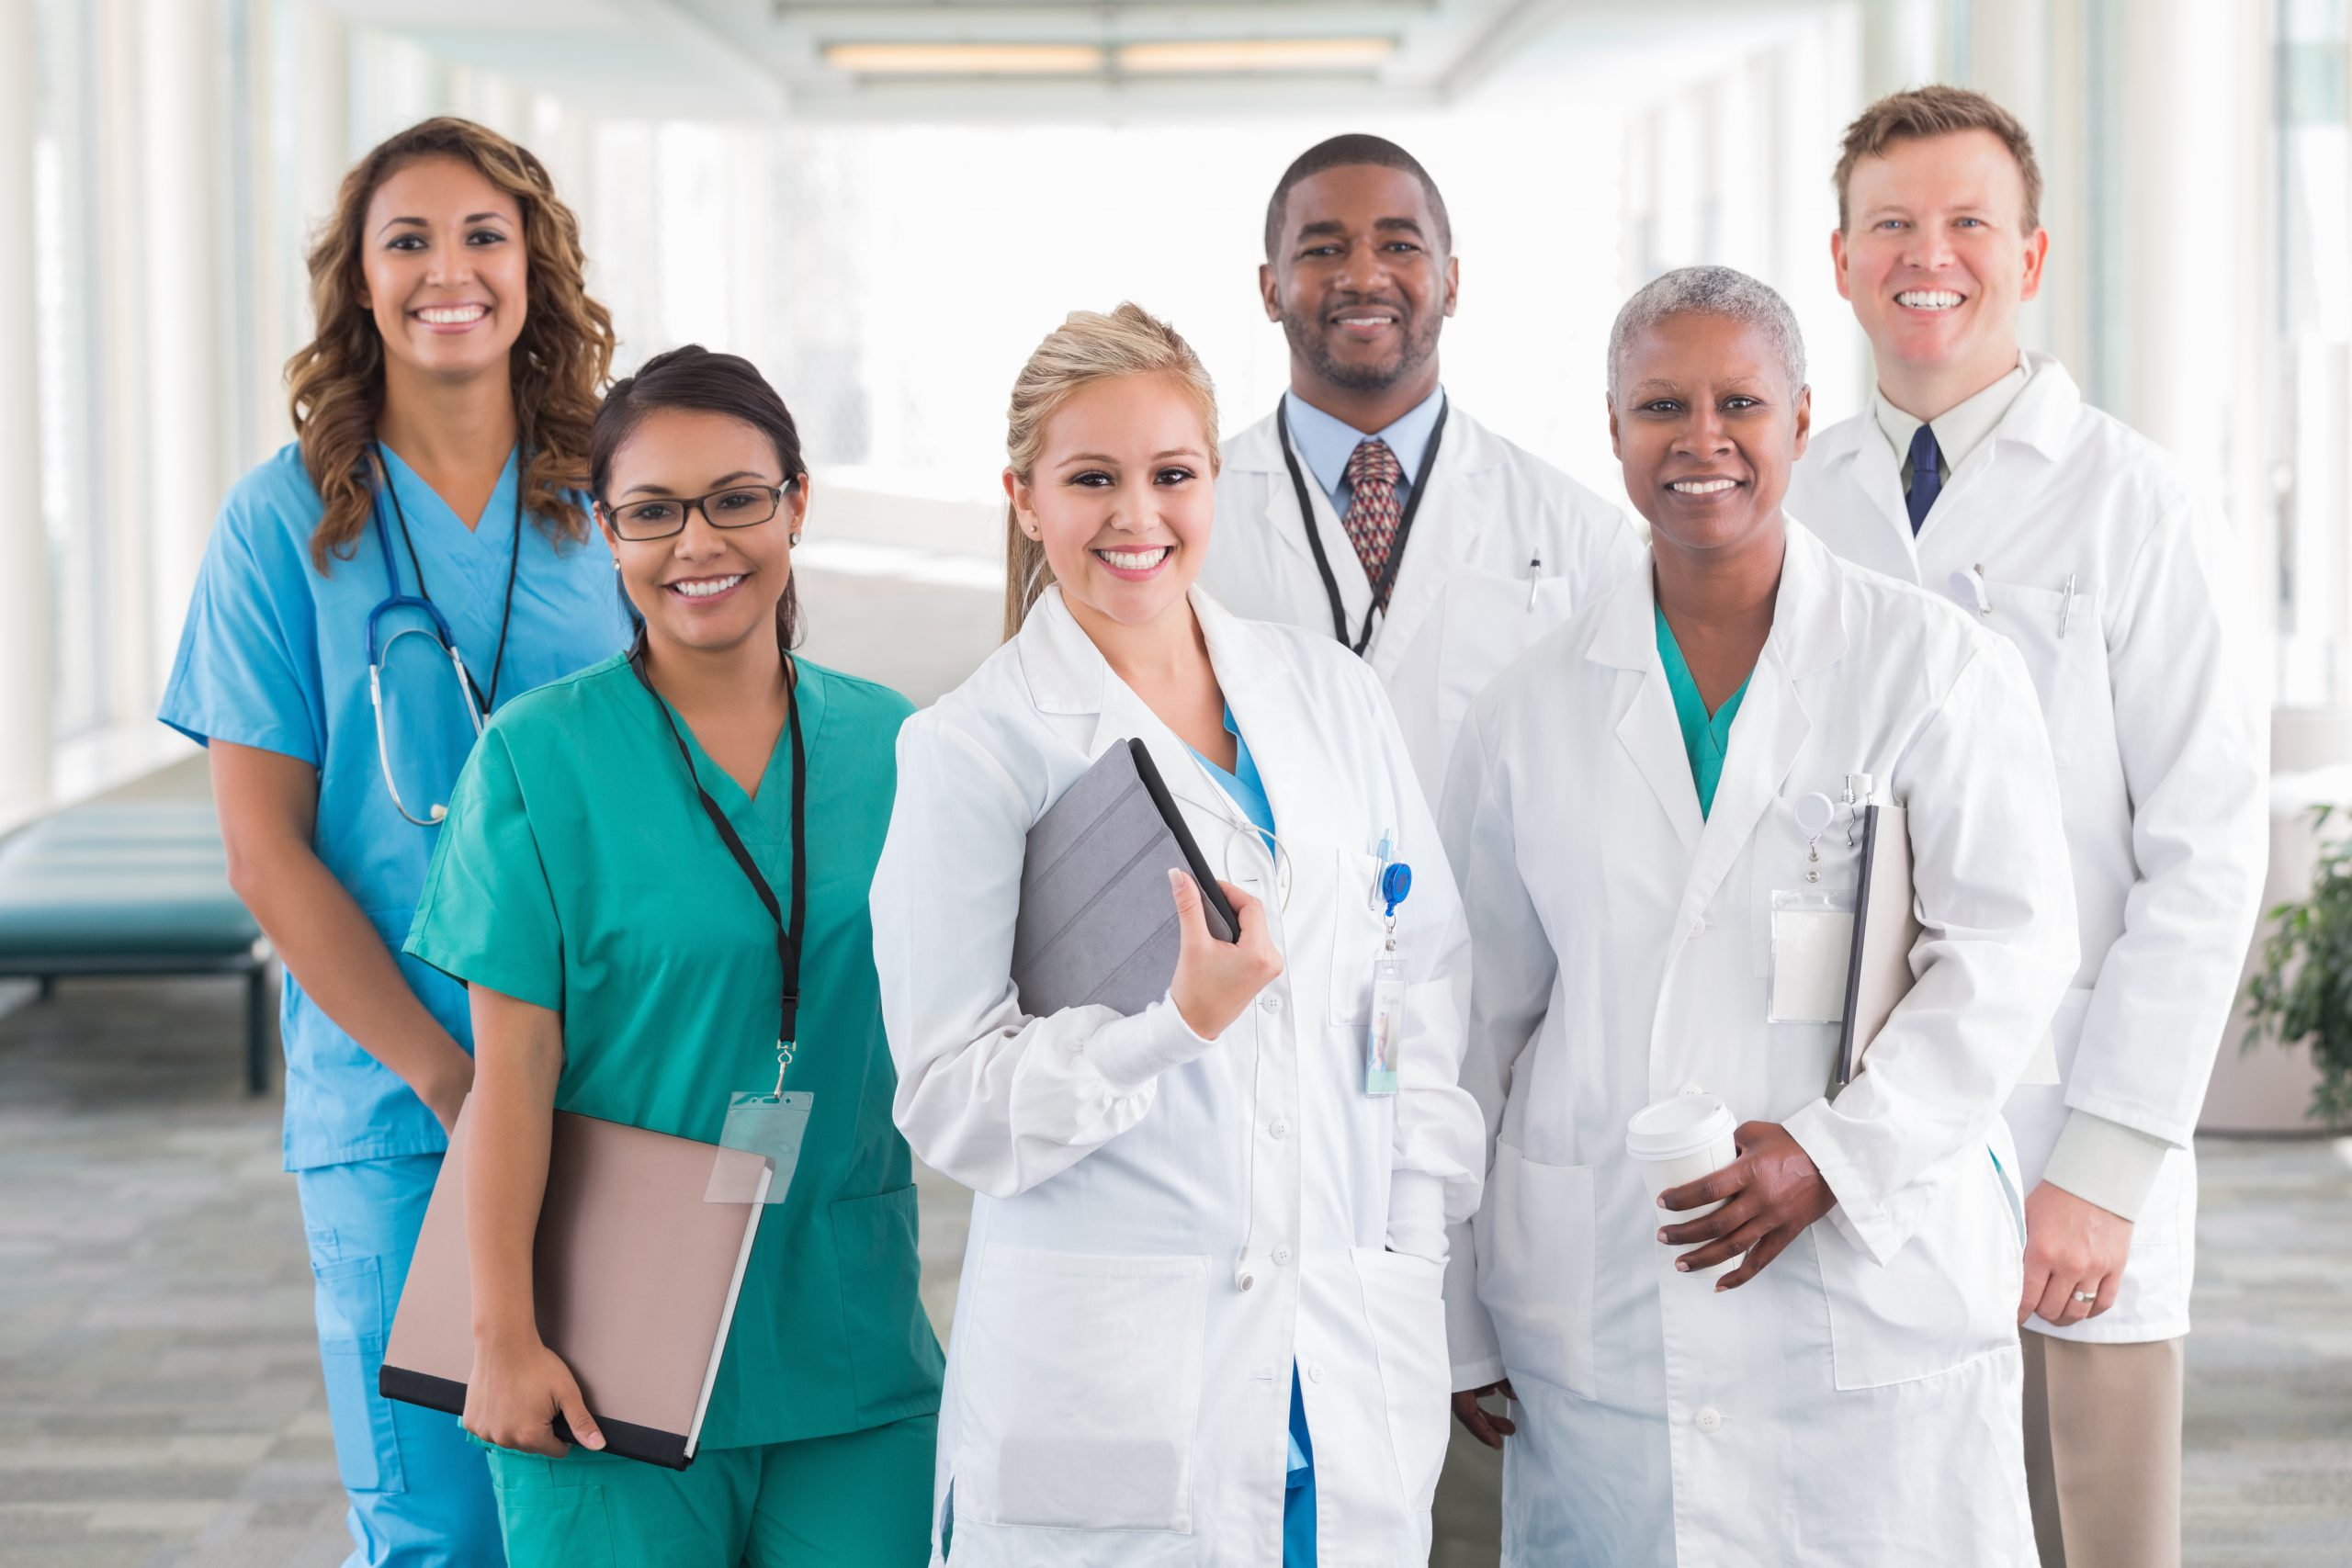 The Untouchables: Personality Assessments for Reducing Cost and Improving the Patient Experience